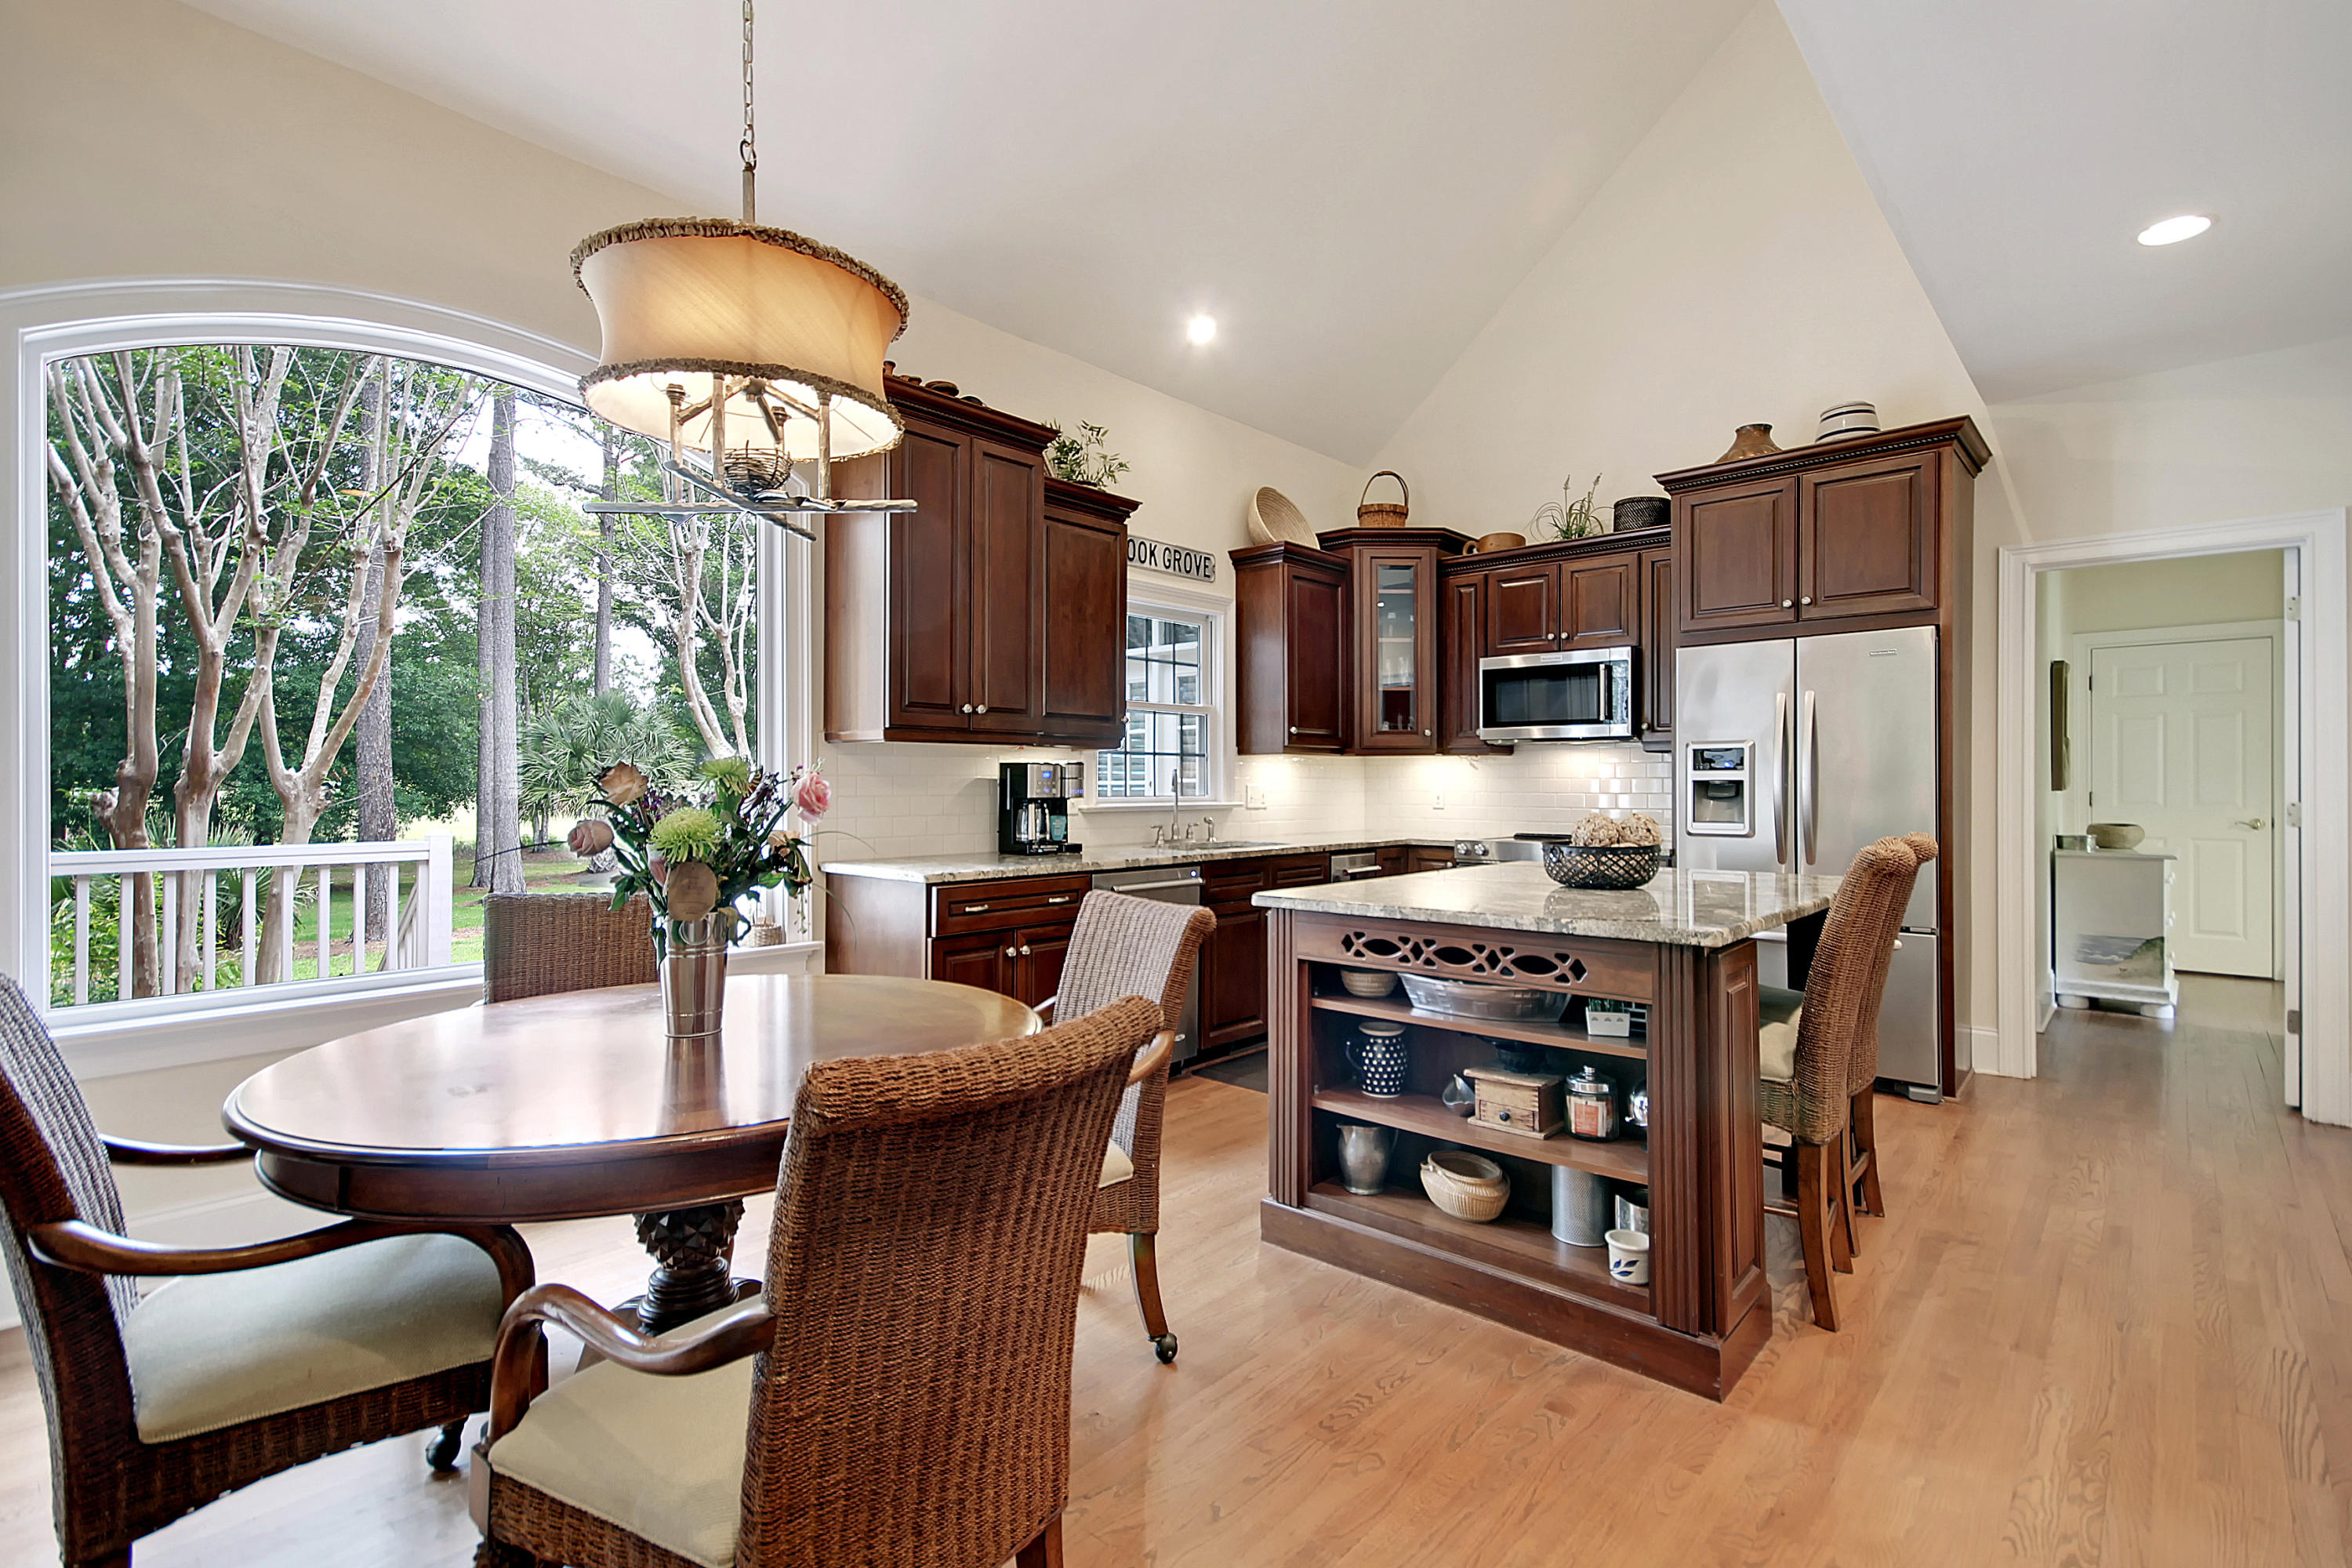 Dunes West Homes For Sale - 1829 Shell Ring, Mount Pleasant, SC - 4